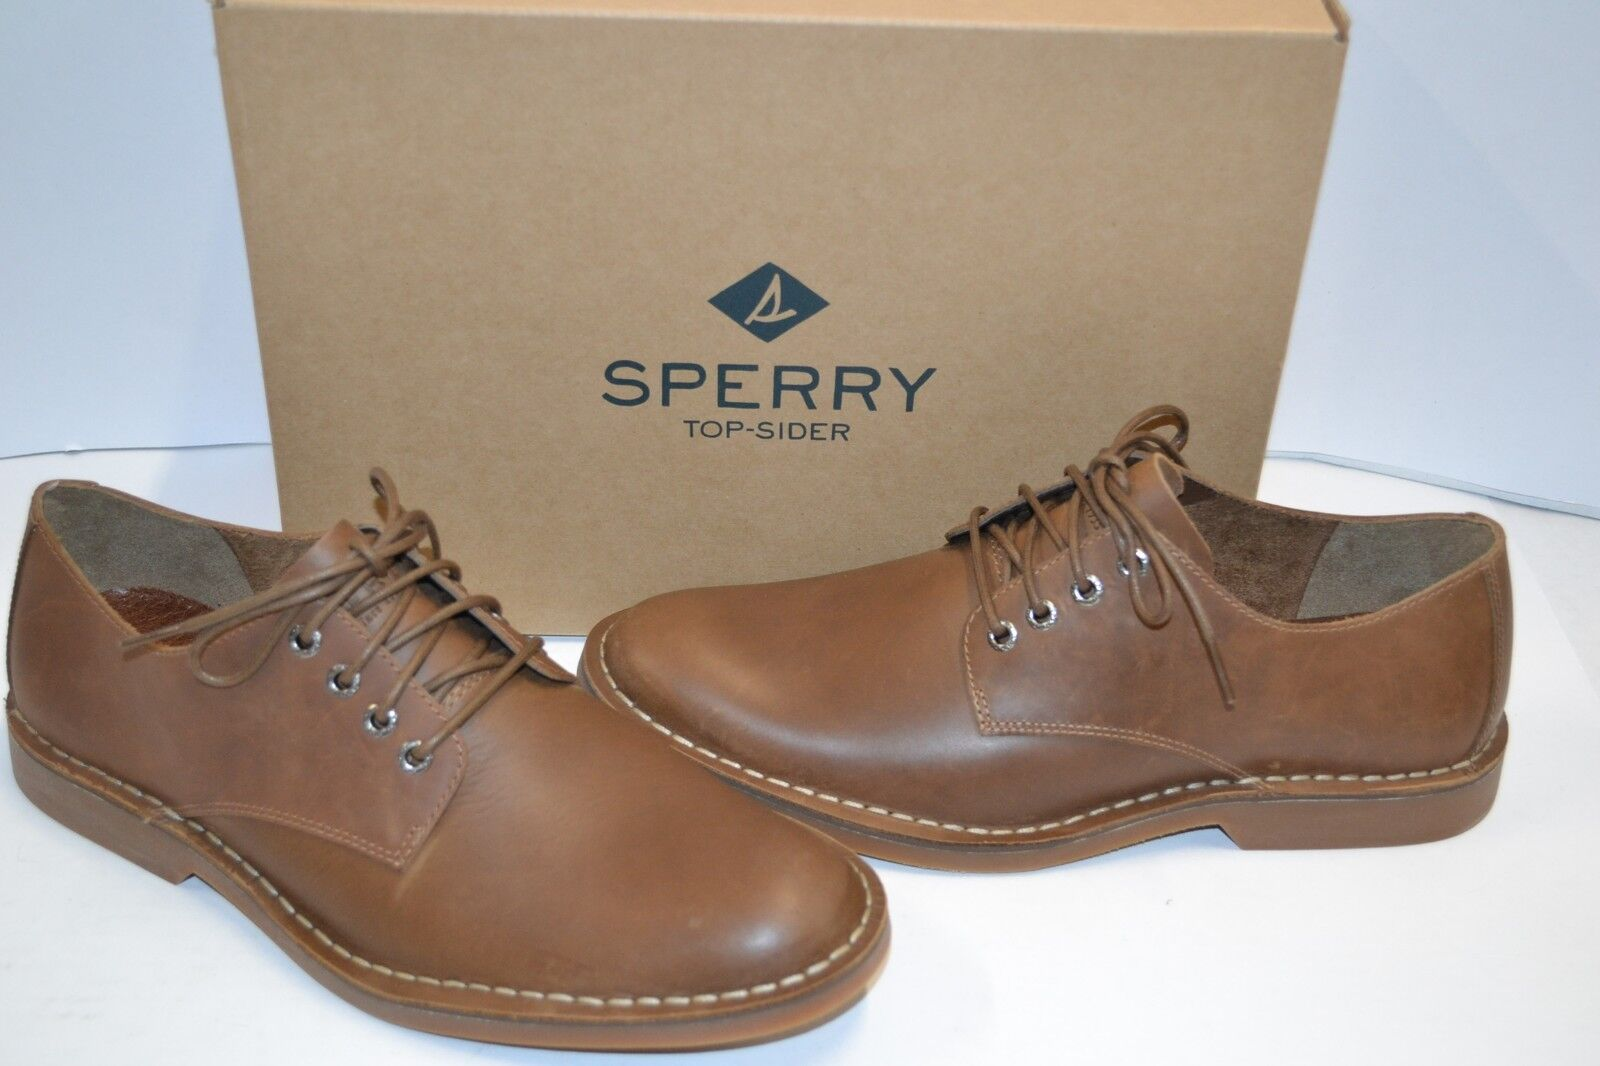 Sperry Top-Sider Harbor OXFORD PLAIN TOE Mens LEATHER TAN SHOE MEMORY FOAM 9.5 M